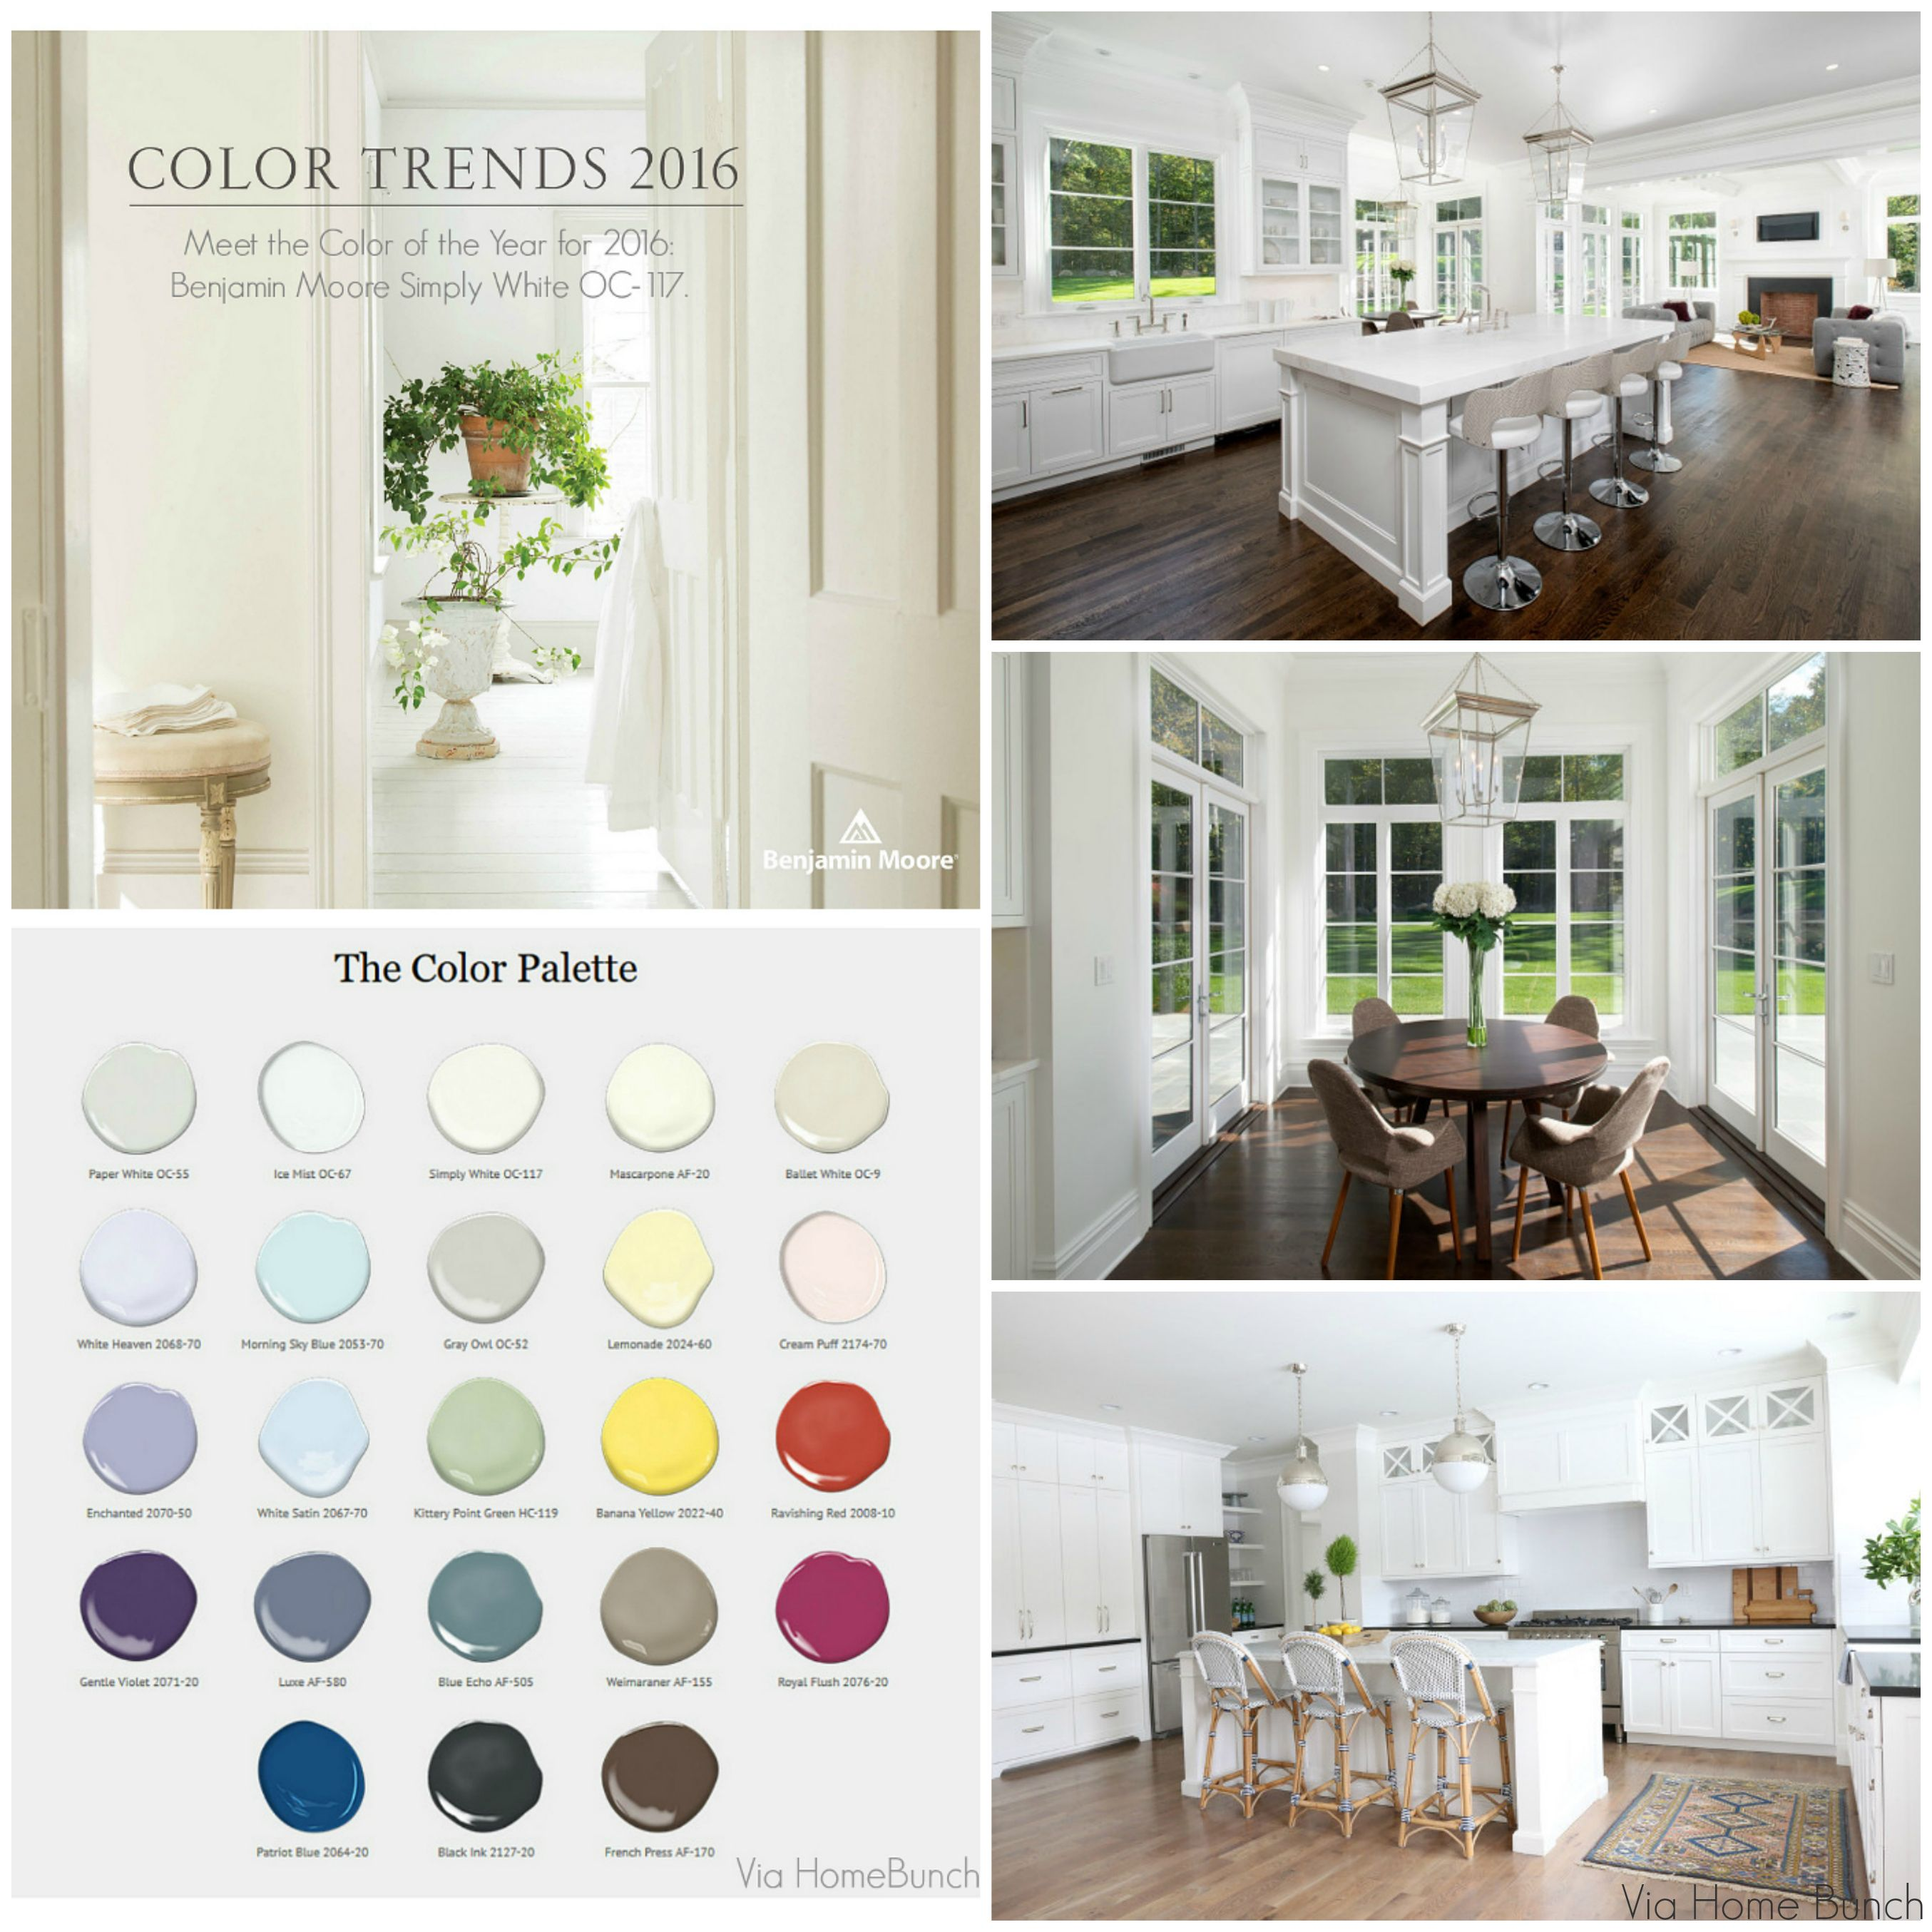 Home Design Color Ideas: Benjamin Moore Color Of The Year 2016: Simply White, Color